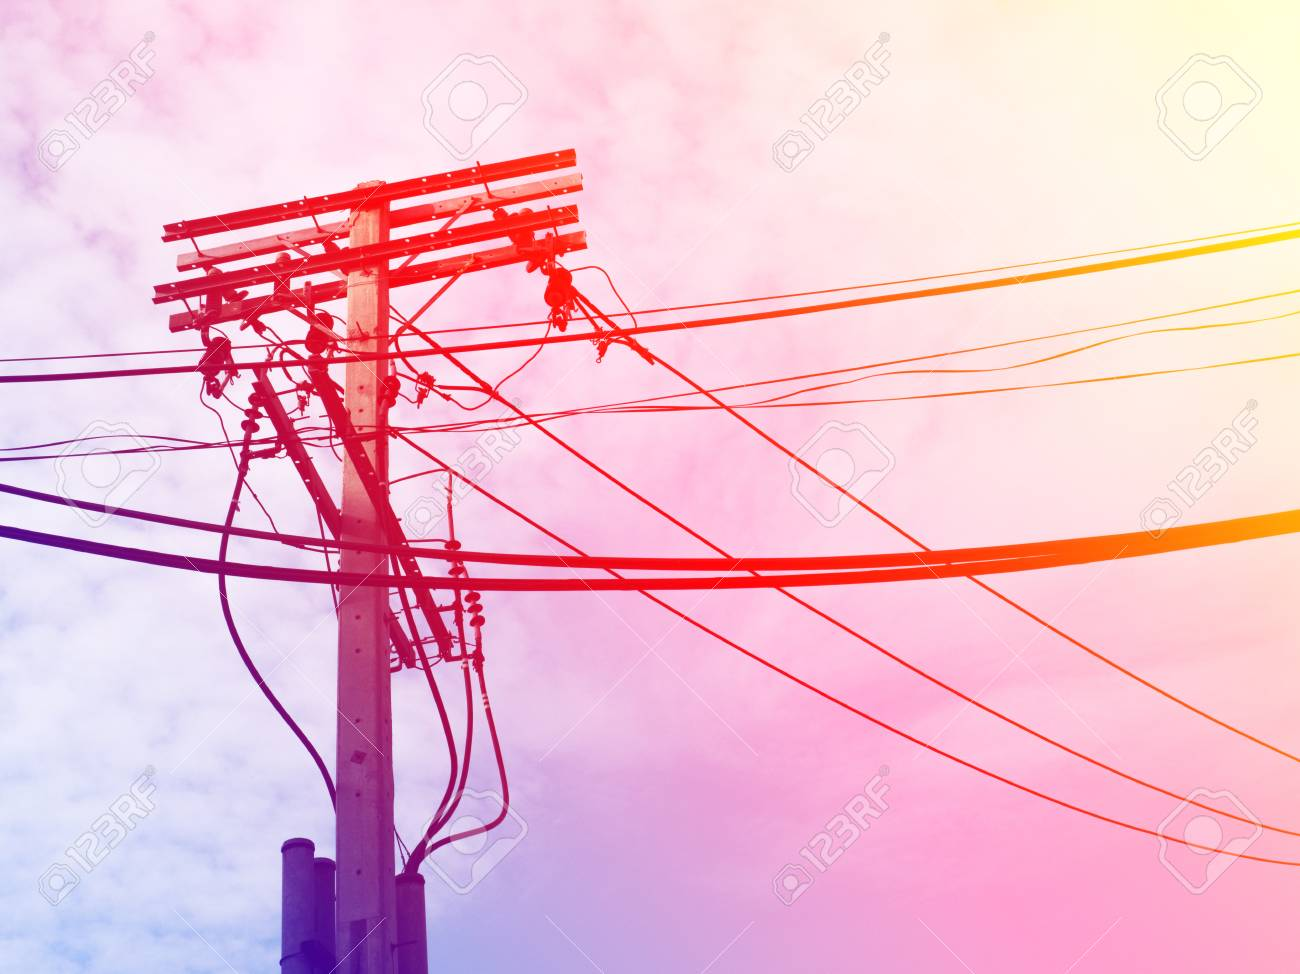 hight resolution of electric pole power lines and wires with blue sky with lamp vintage stock photo 61392963